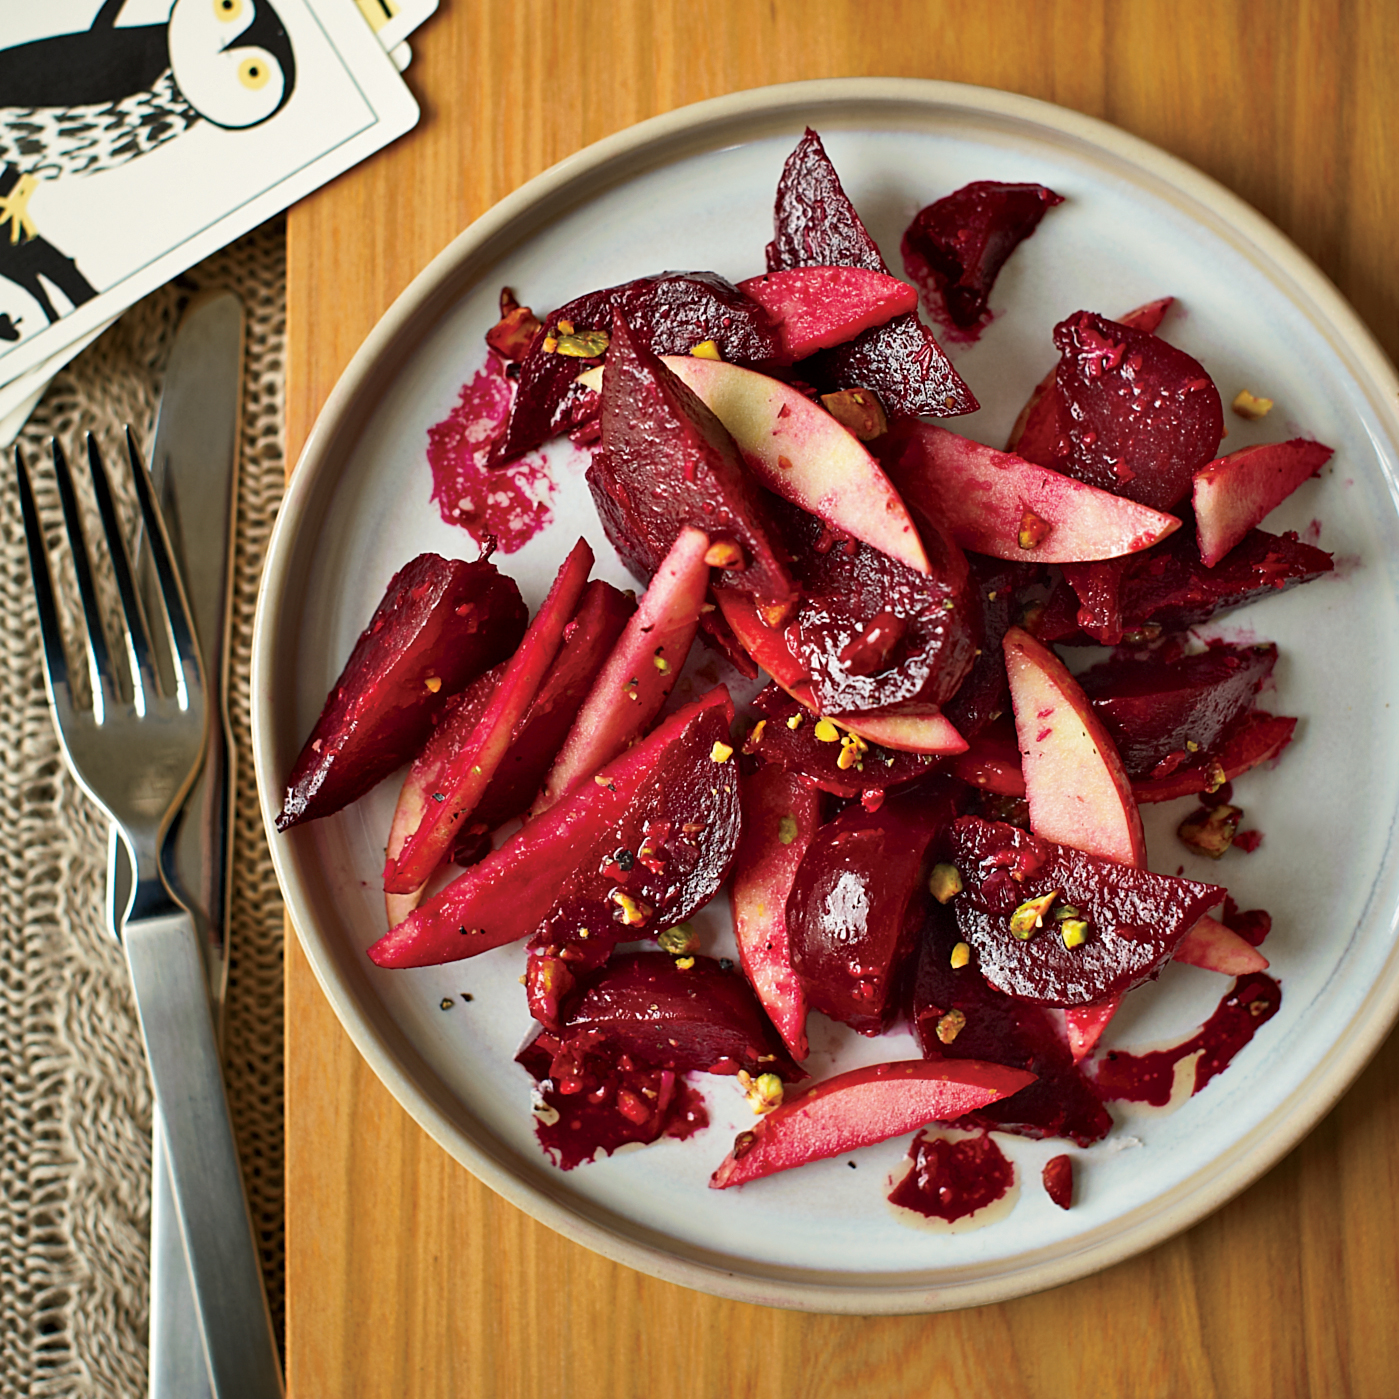 Healthy Thanksgiving Side Dishes like Beet and Apple Salad